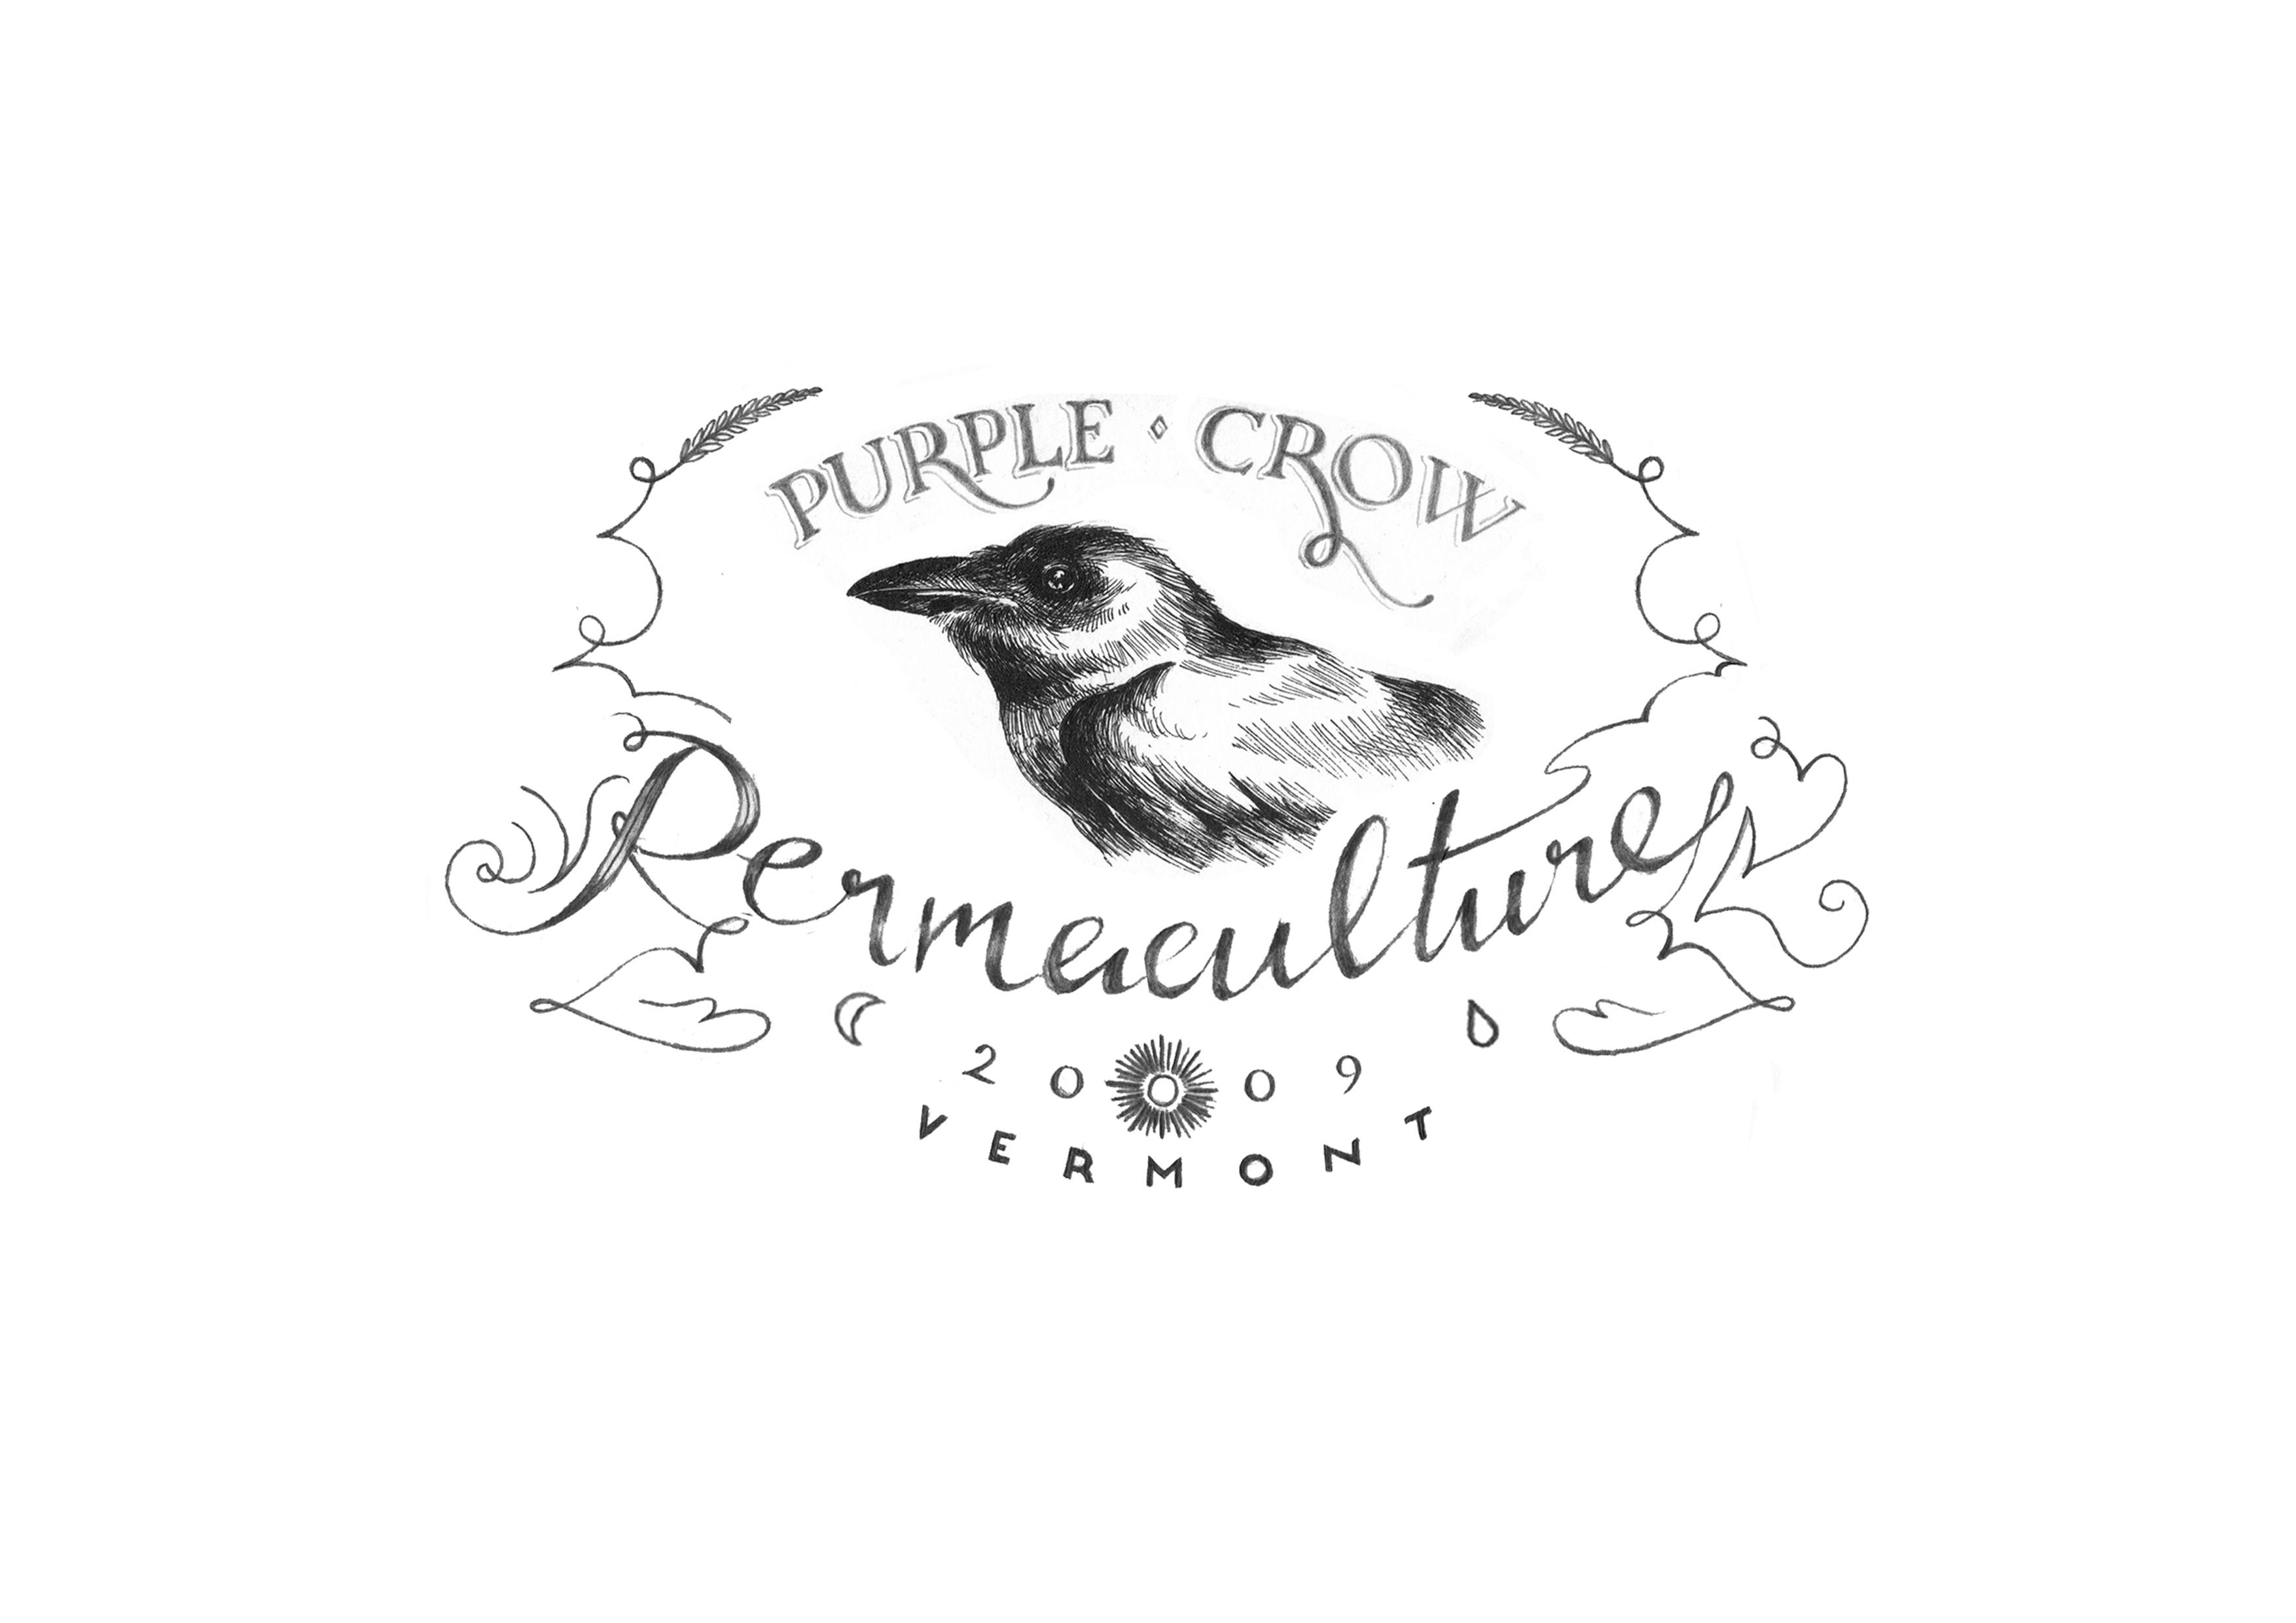 Purple Crow Permaculture - image 9 - student project